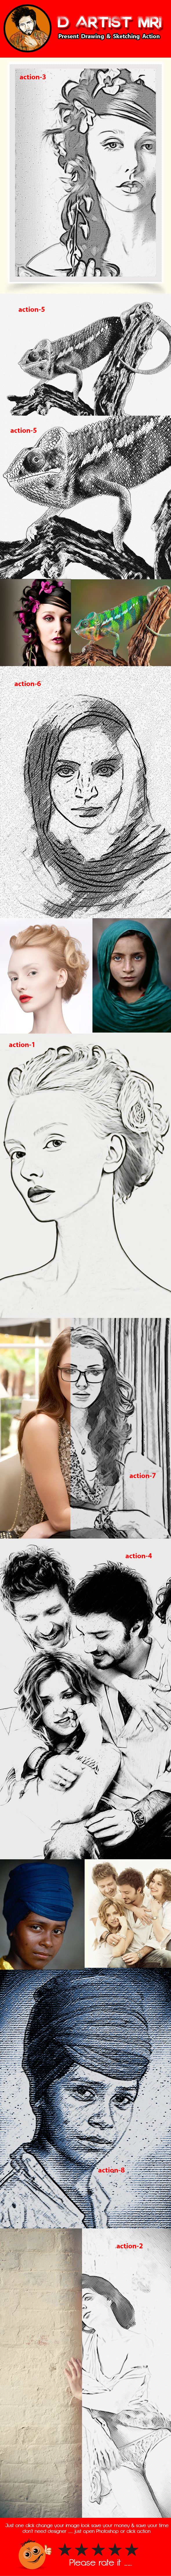 Drawing & Sketching Action - Actions Photoshop